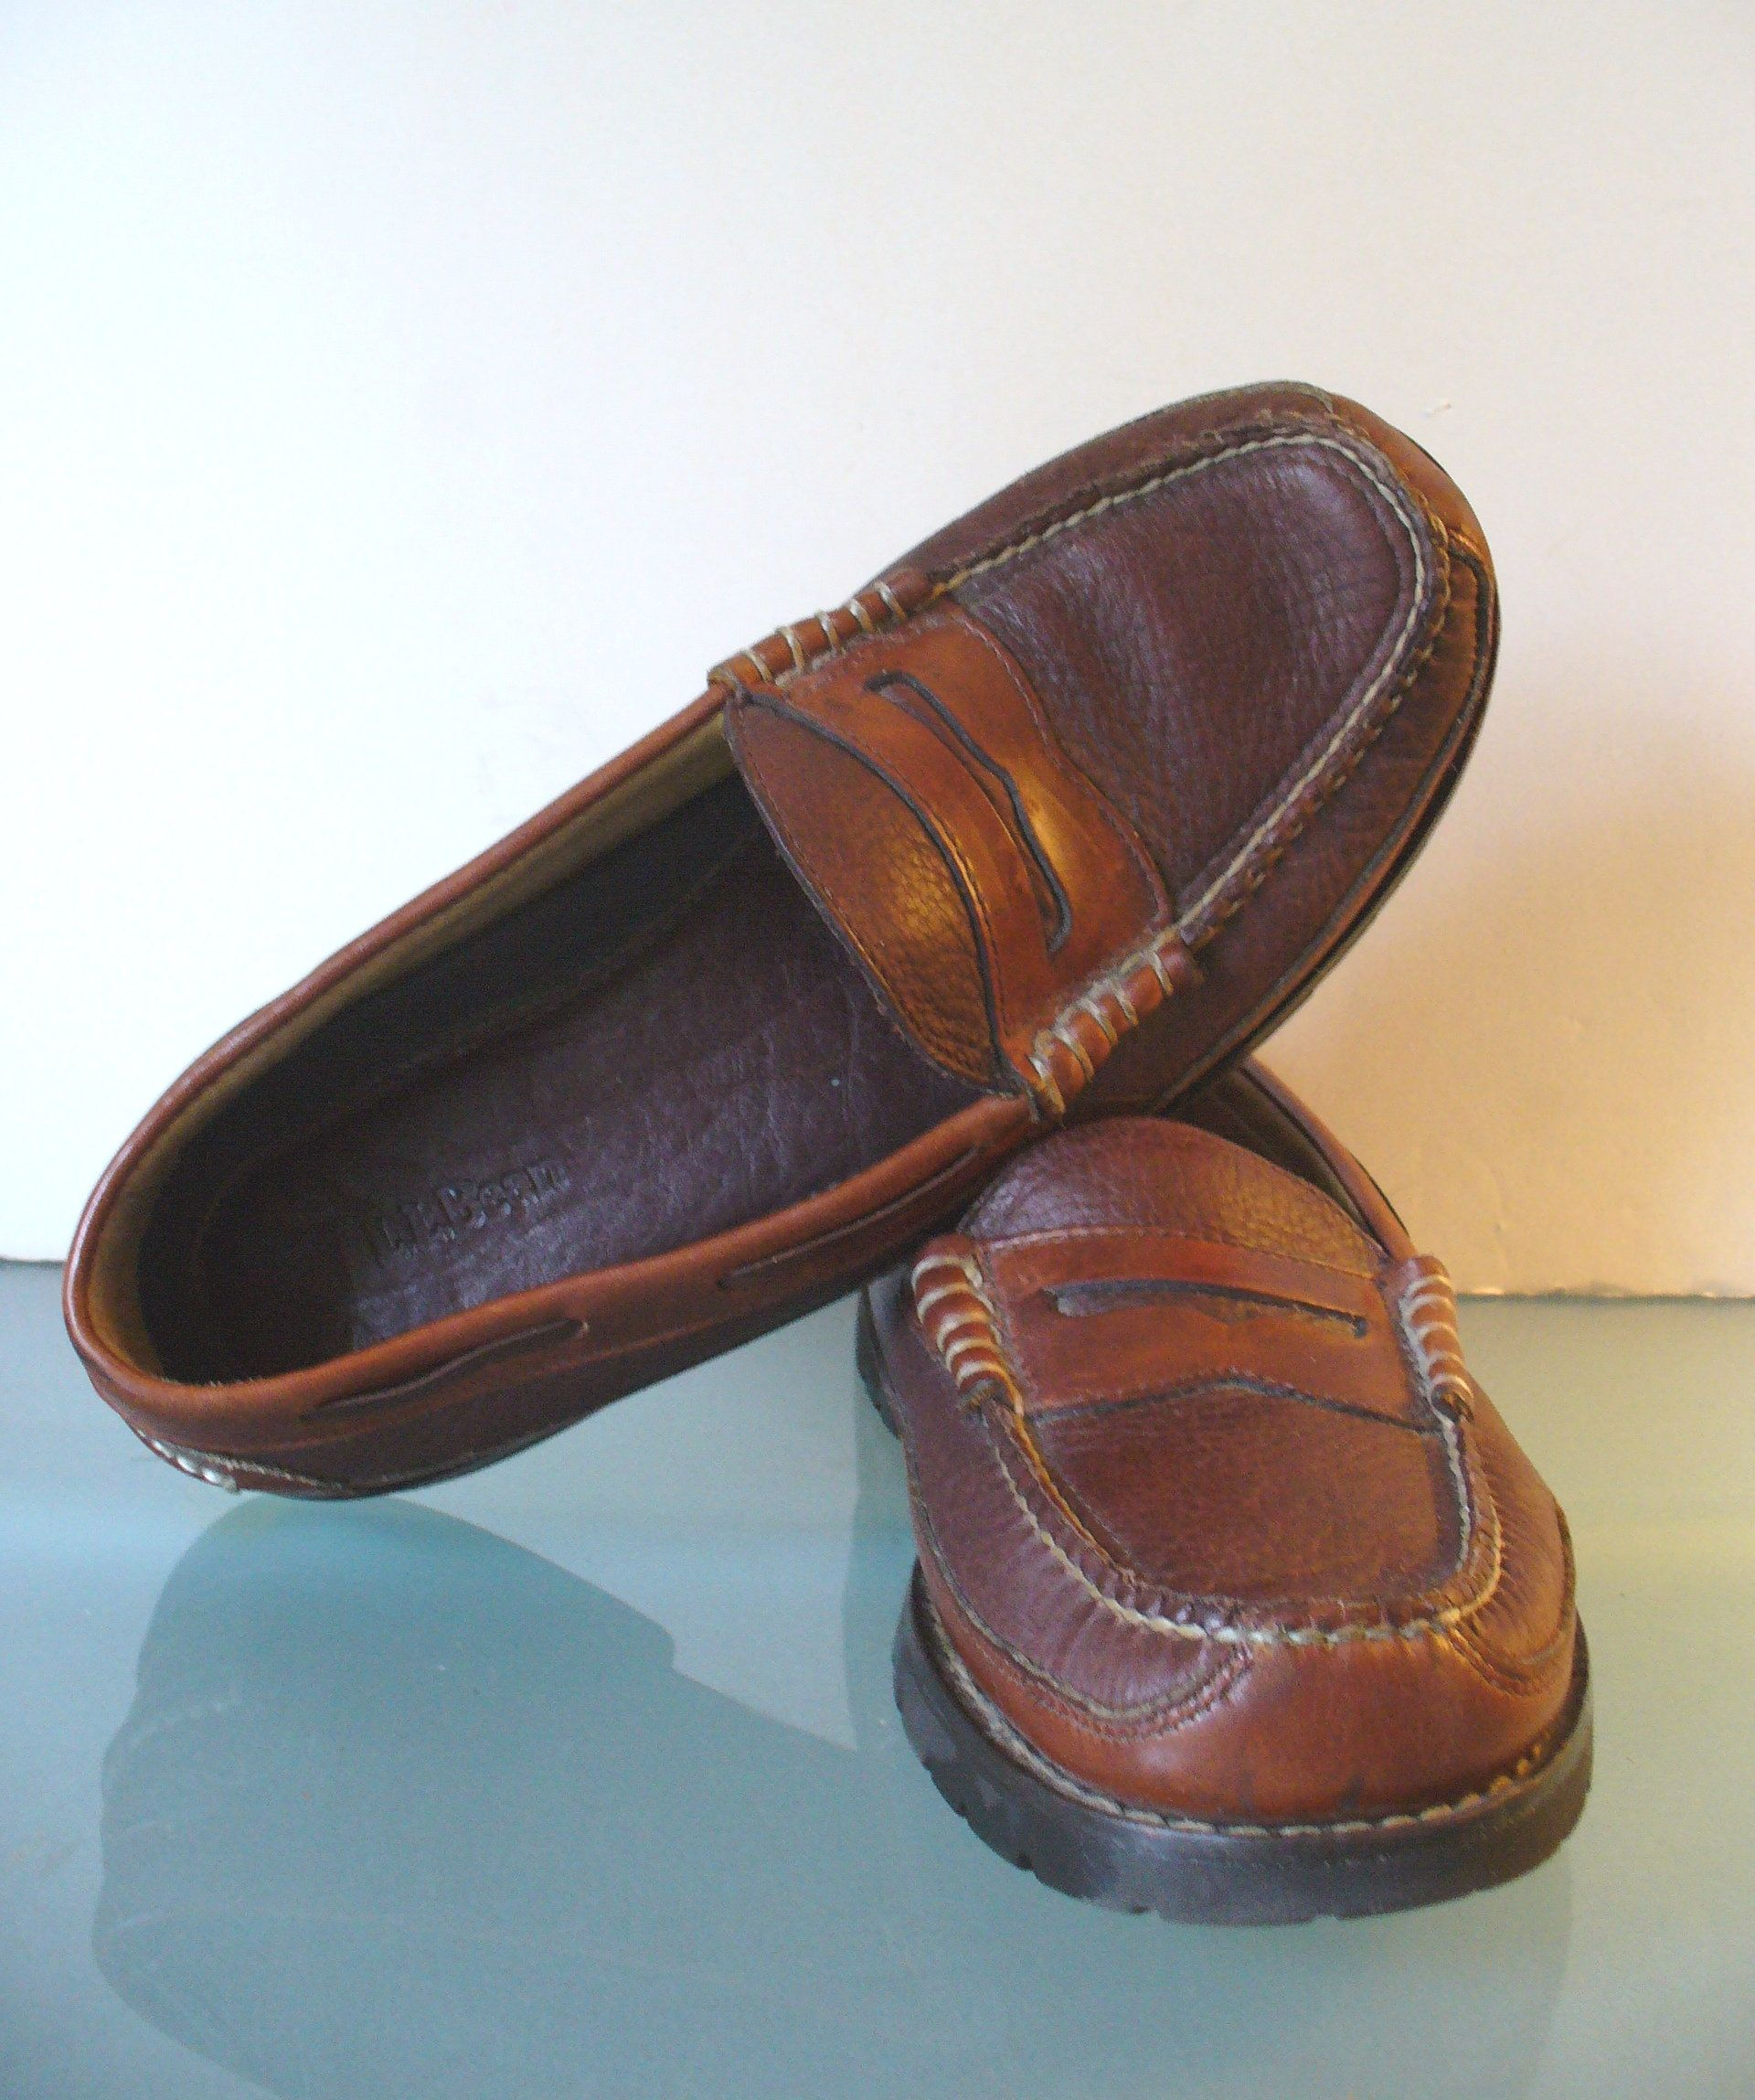 047c53fb5f7 L.L. Bean Men s Moccasin Style Penny Loafers Size 8.5D by TheOldBagOnline  on Etsy